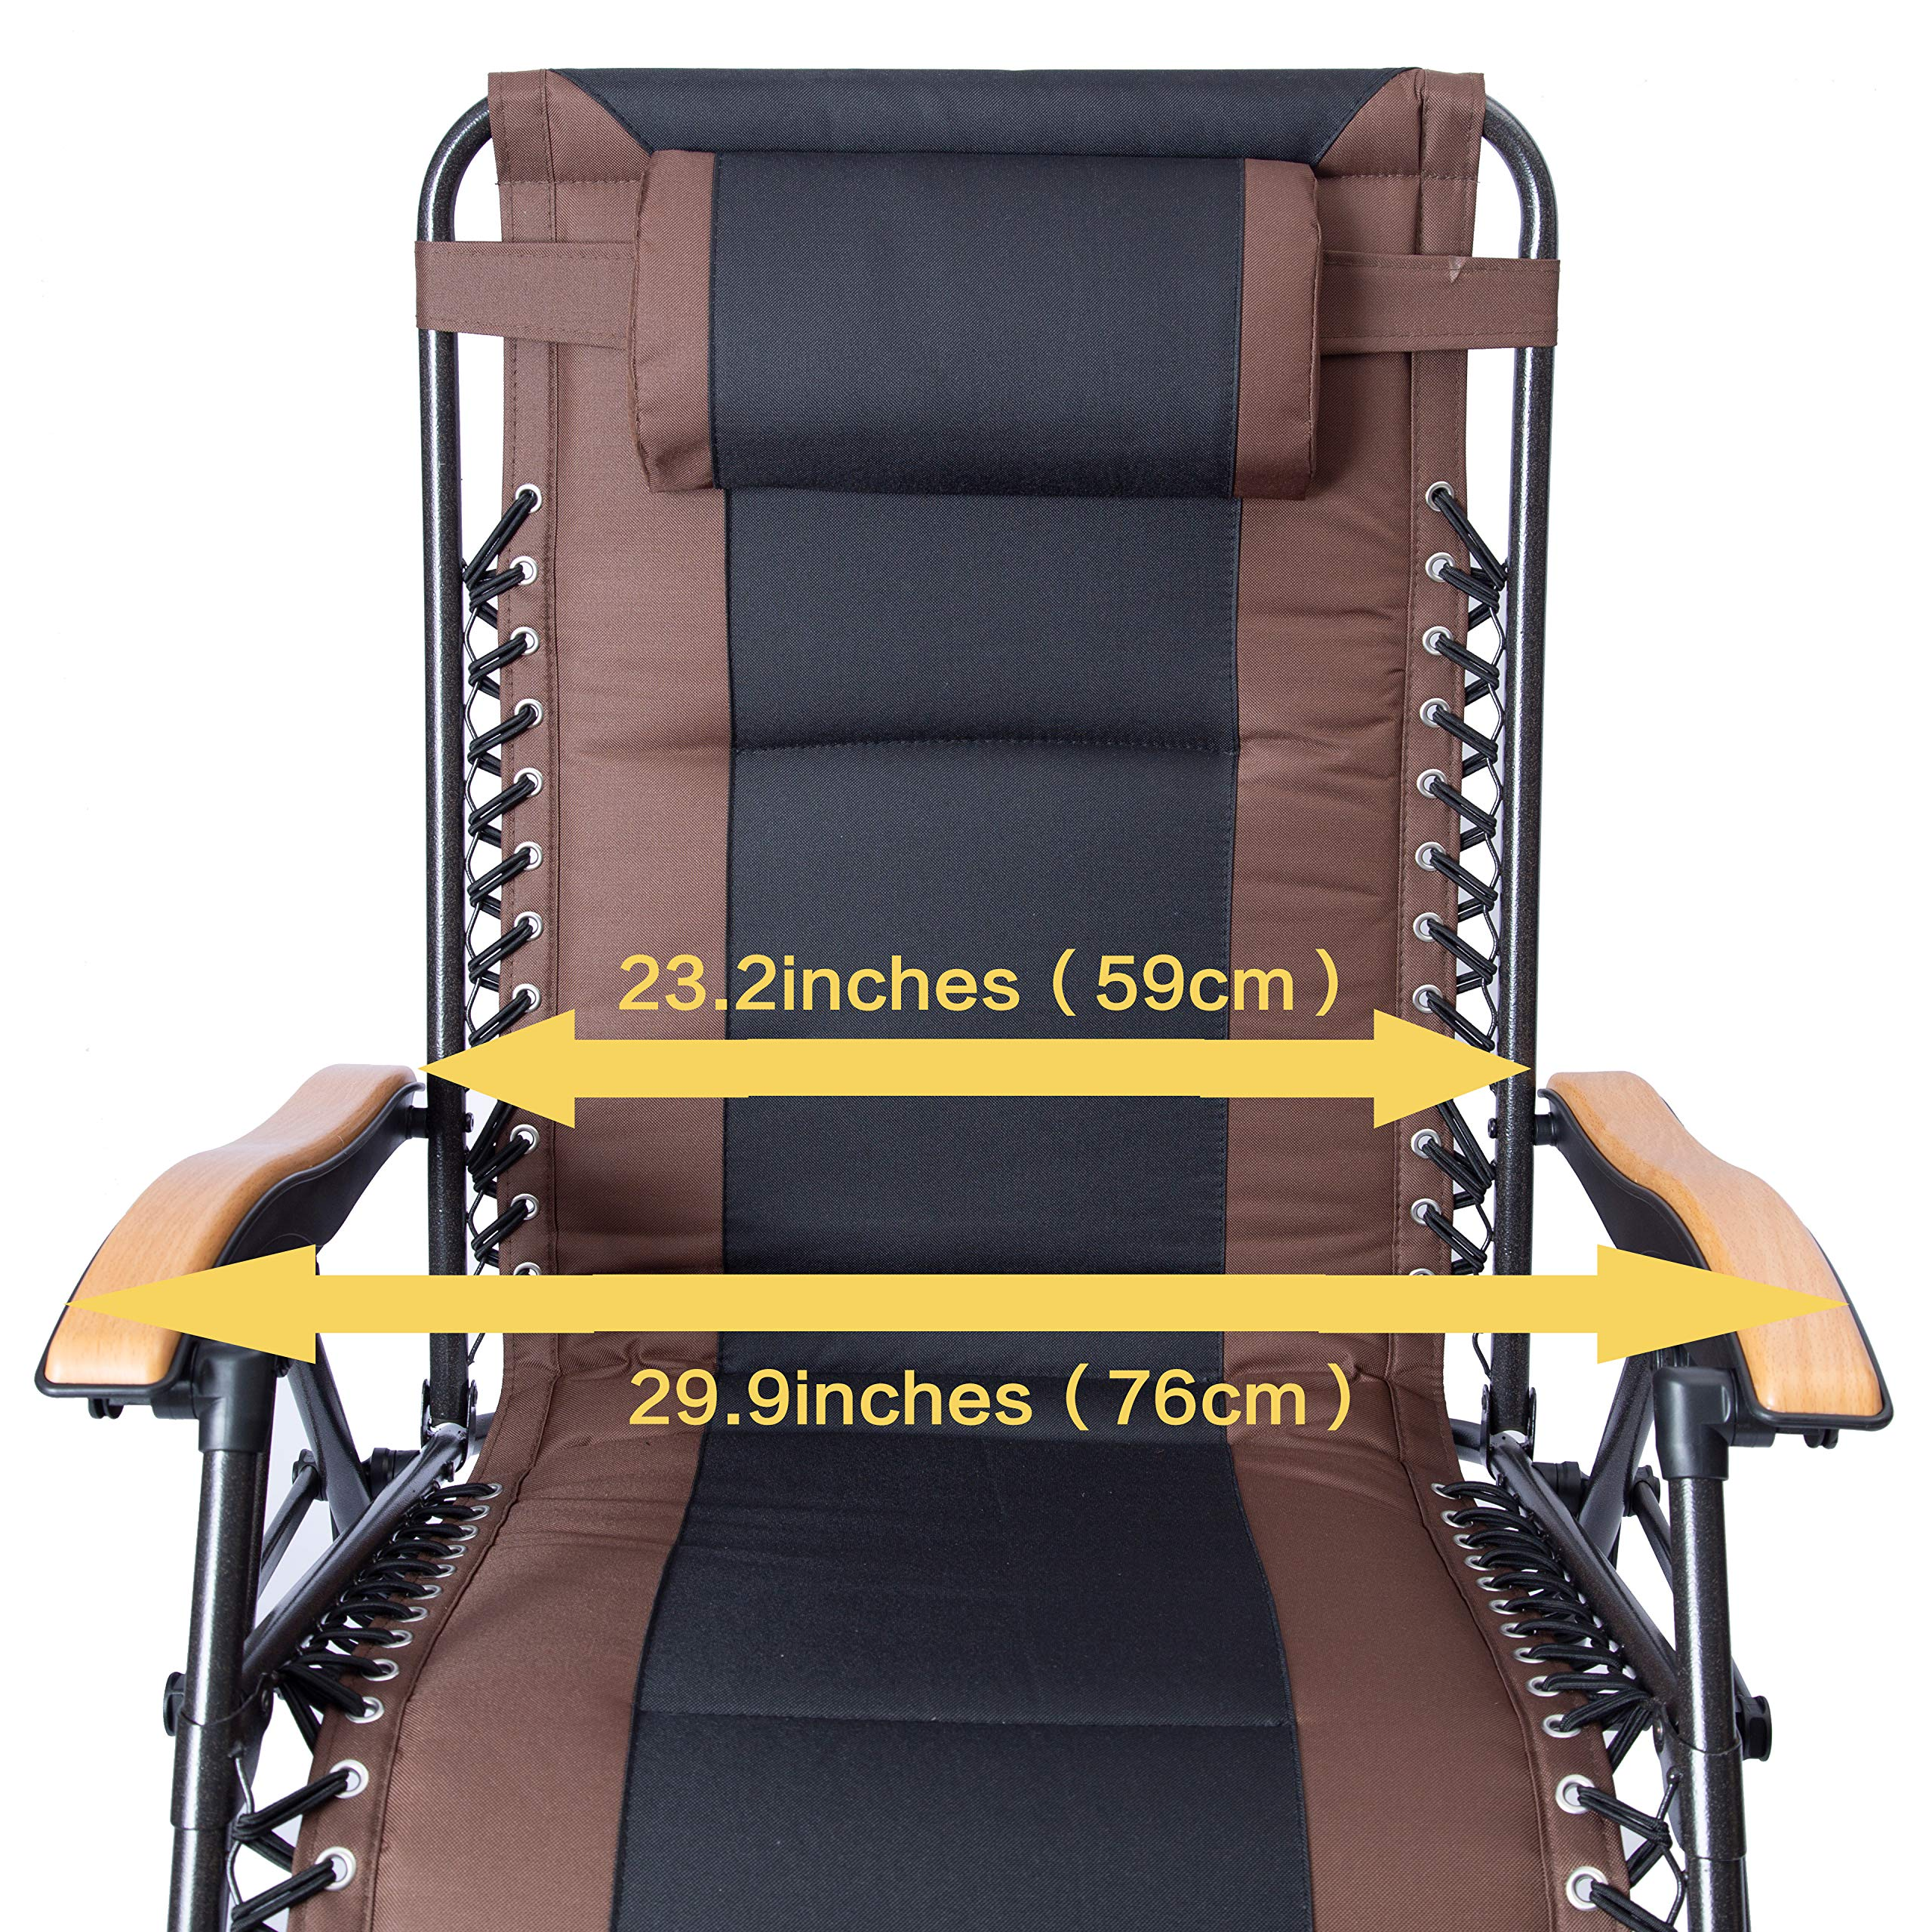 LUCKYBERRY Deluxe Oversized Padded Zero Gravity Chair XL Black Brown Cup Holder Lounge Patio Chairs Outdoor Yard Beach Support 350lbs by LUCKYBERRY (Image #3)